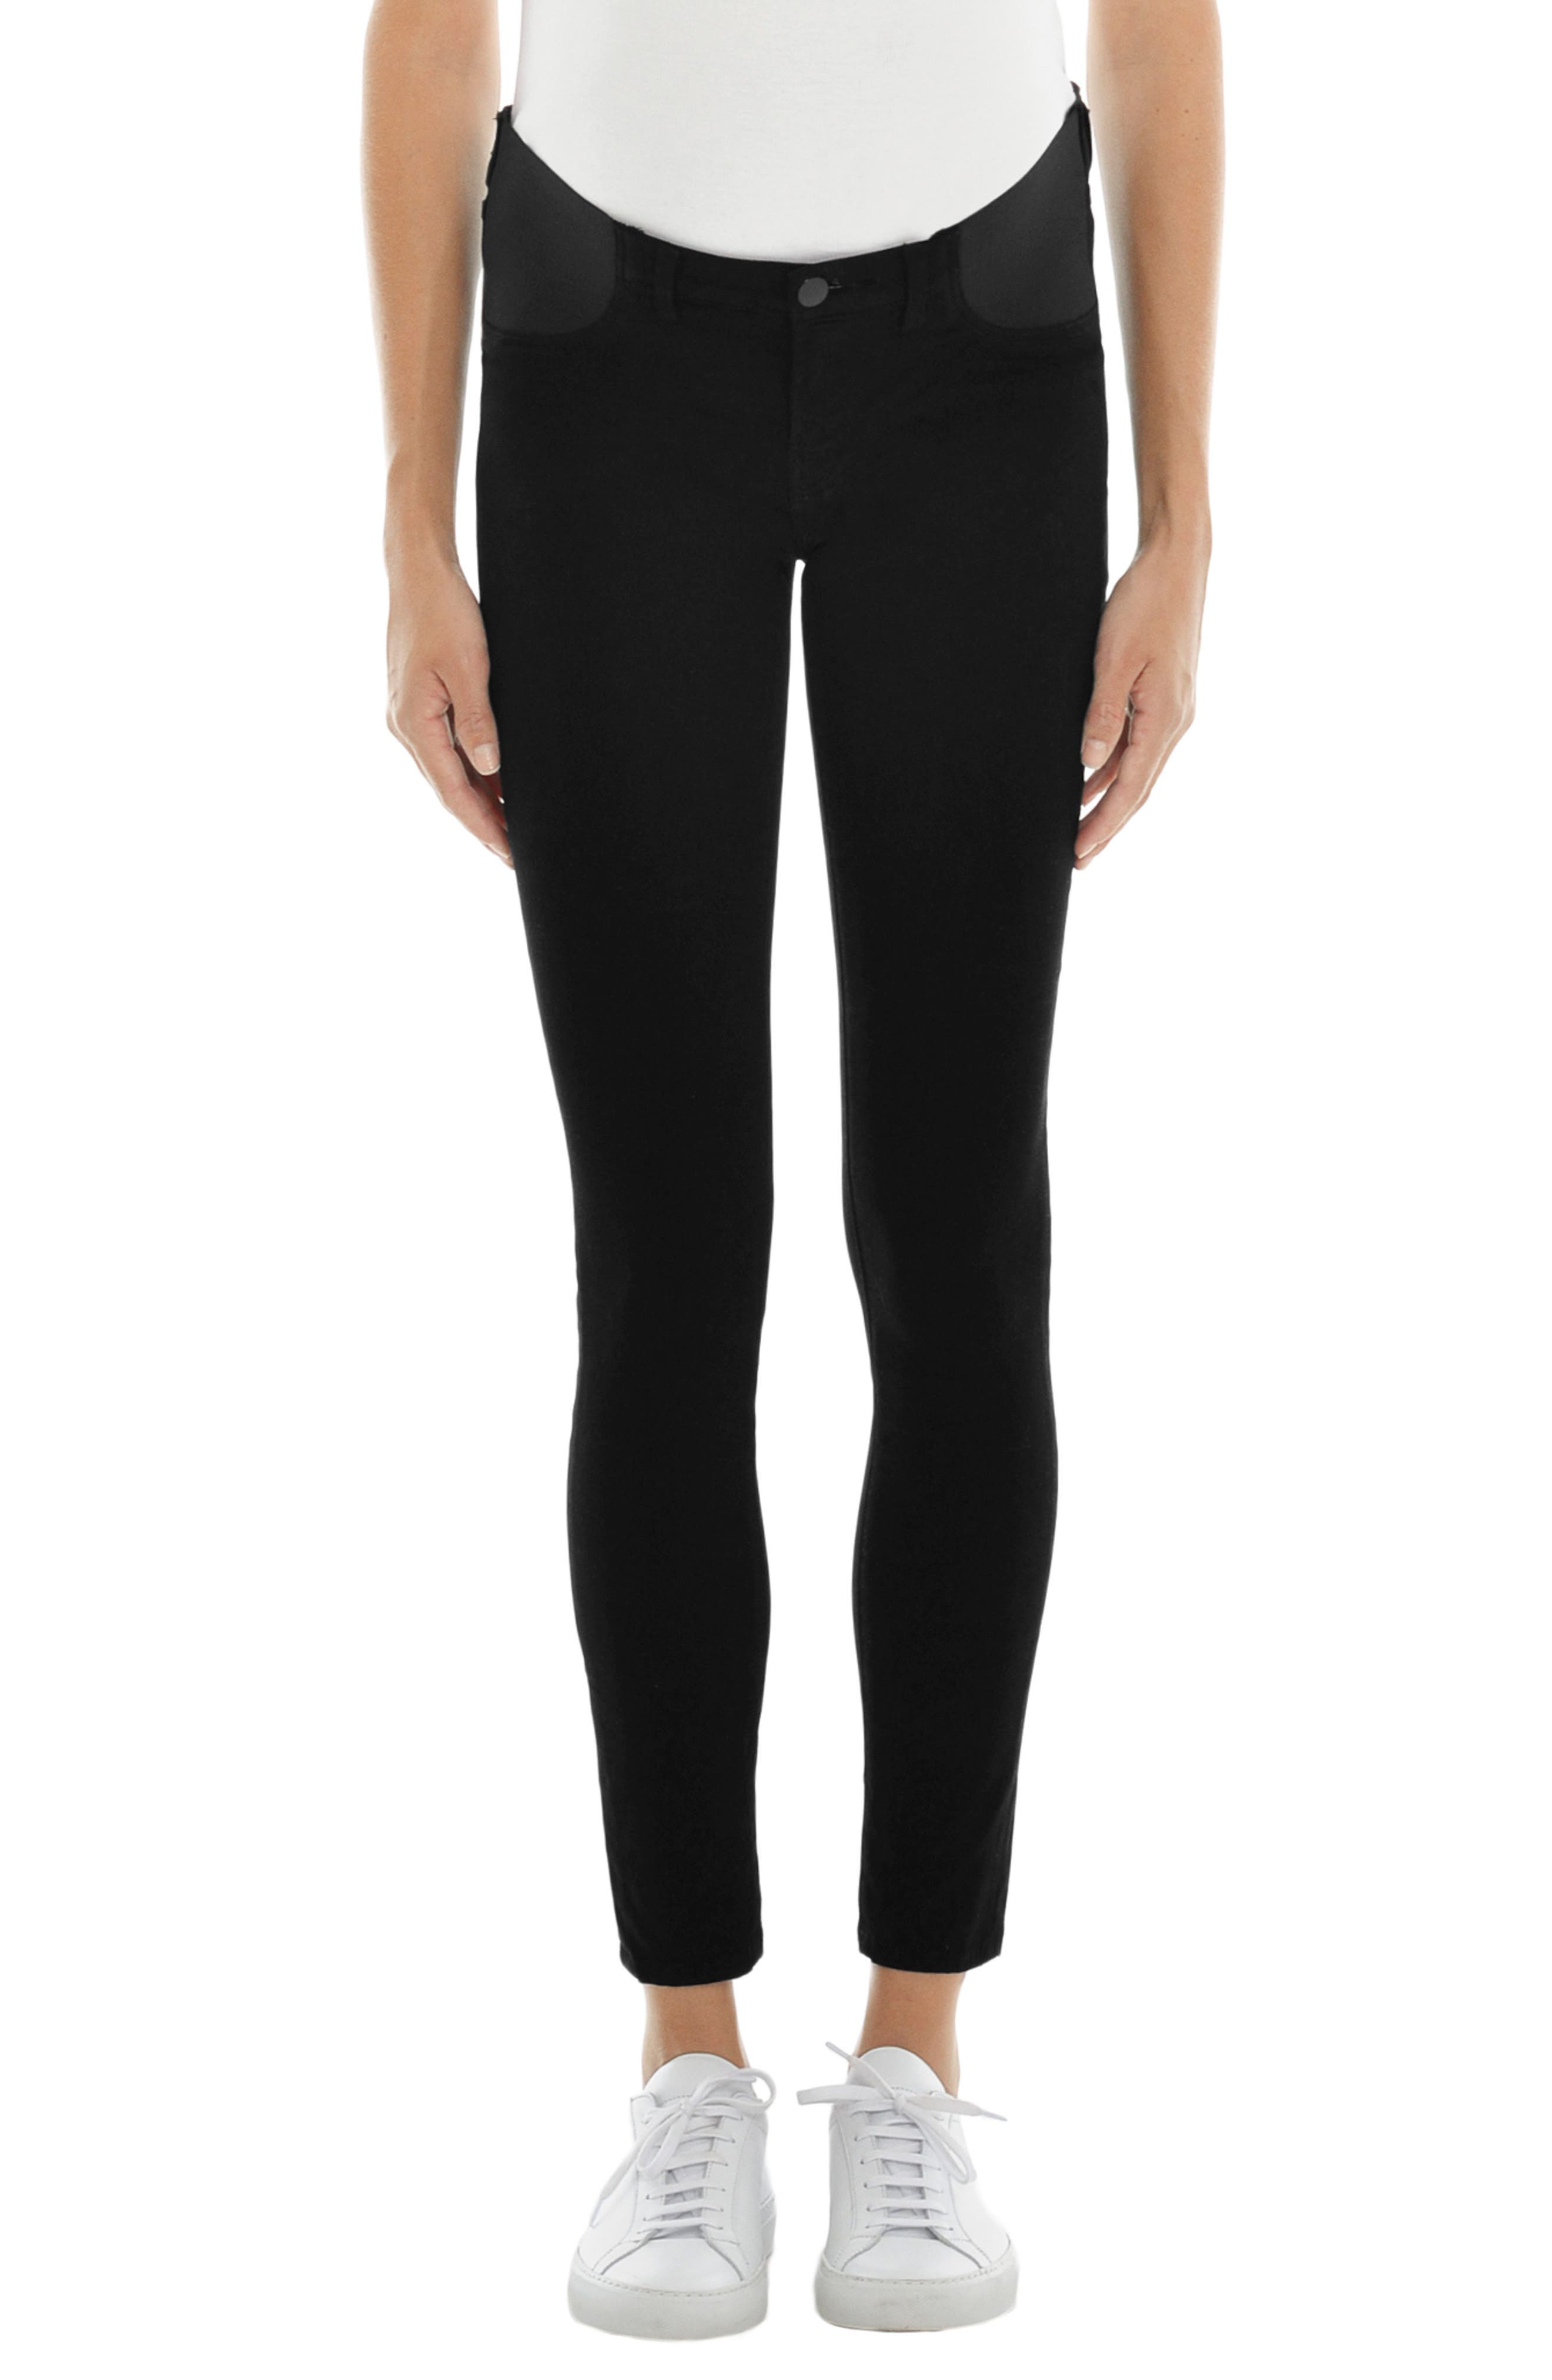 Mama J Luxe Sateen Maternity Skinny Jeans,                         Main,                         color, Black